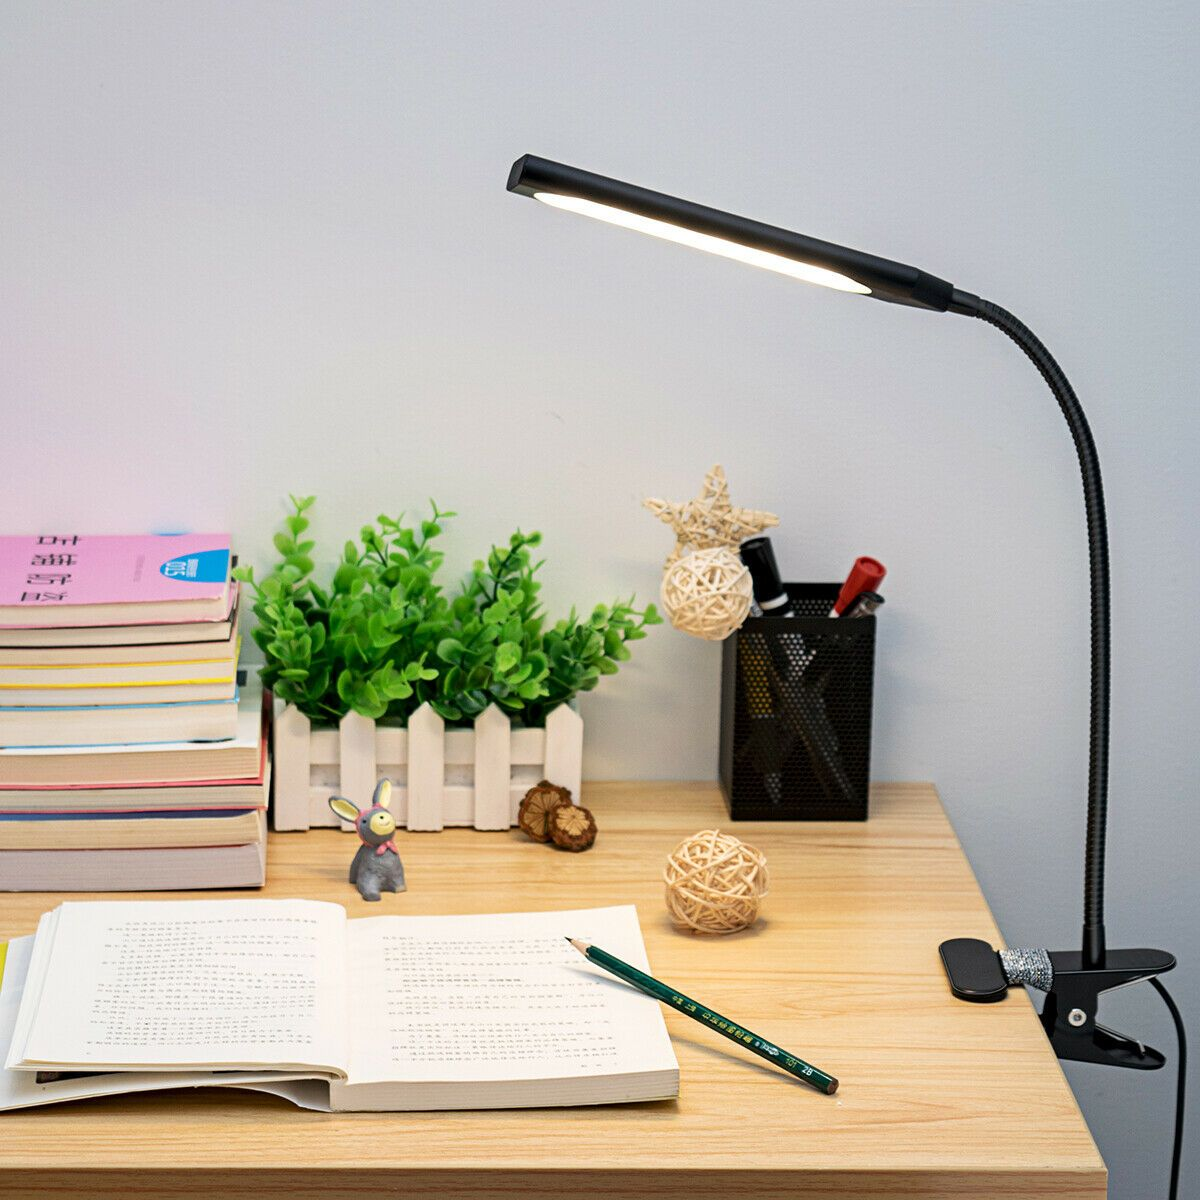 Led Usb Clip On Table Desk Lamp Flexible 3 Mode Reading Dimming Night Light Book Lamp Clip On Desk Lamp Desk Lamp